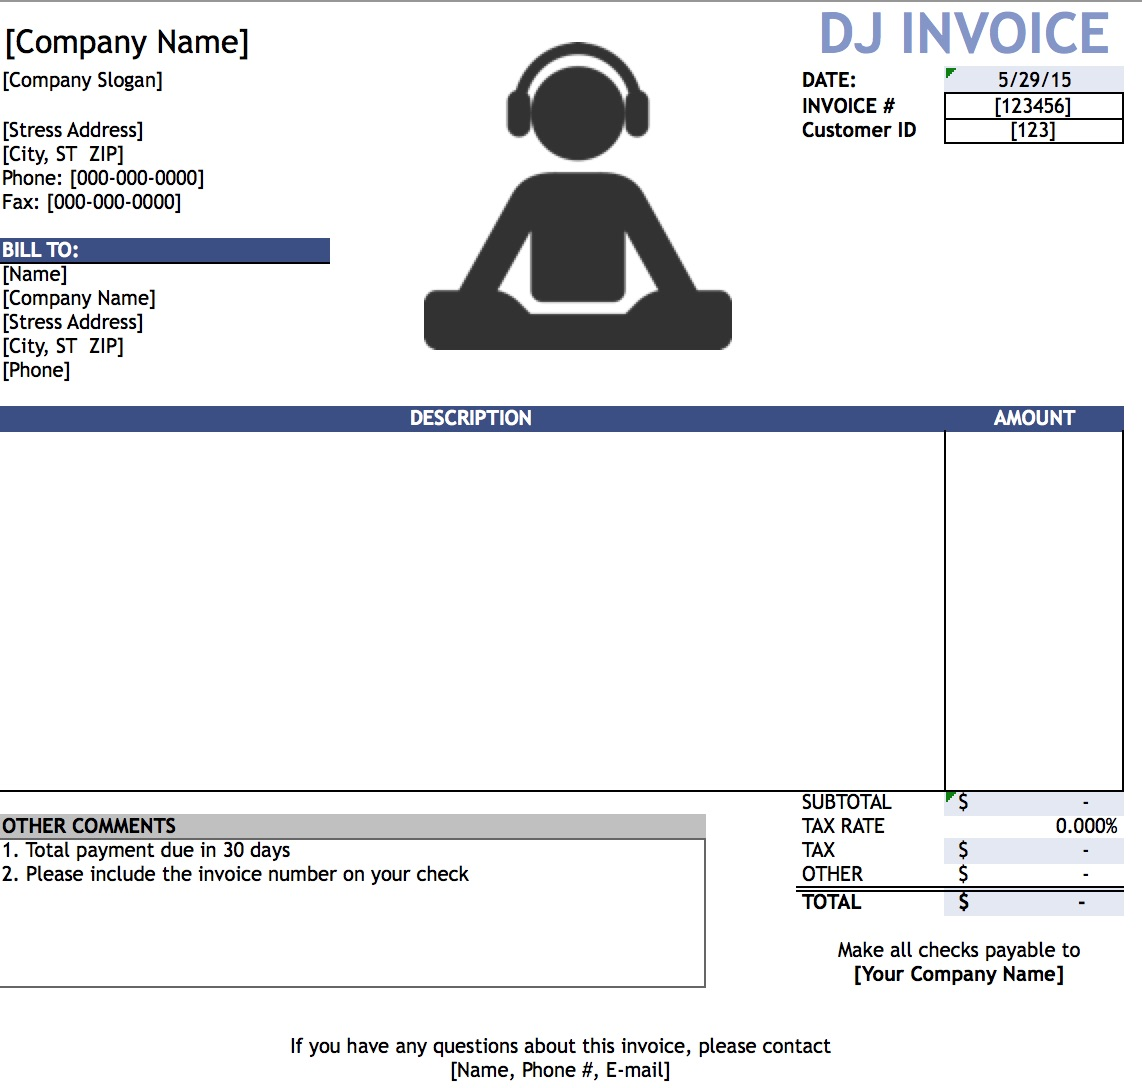 Free DJ Disc Jockey Invoice Template Excel PDF Word Doc - Free download invoices for service business